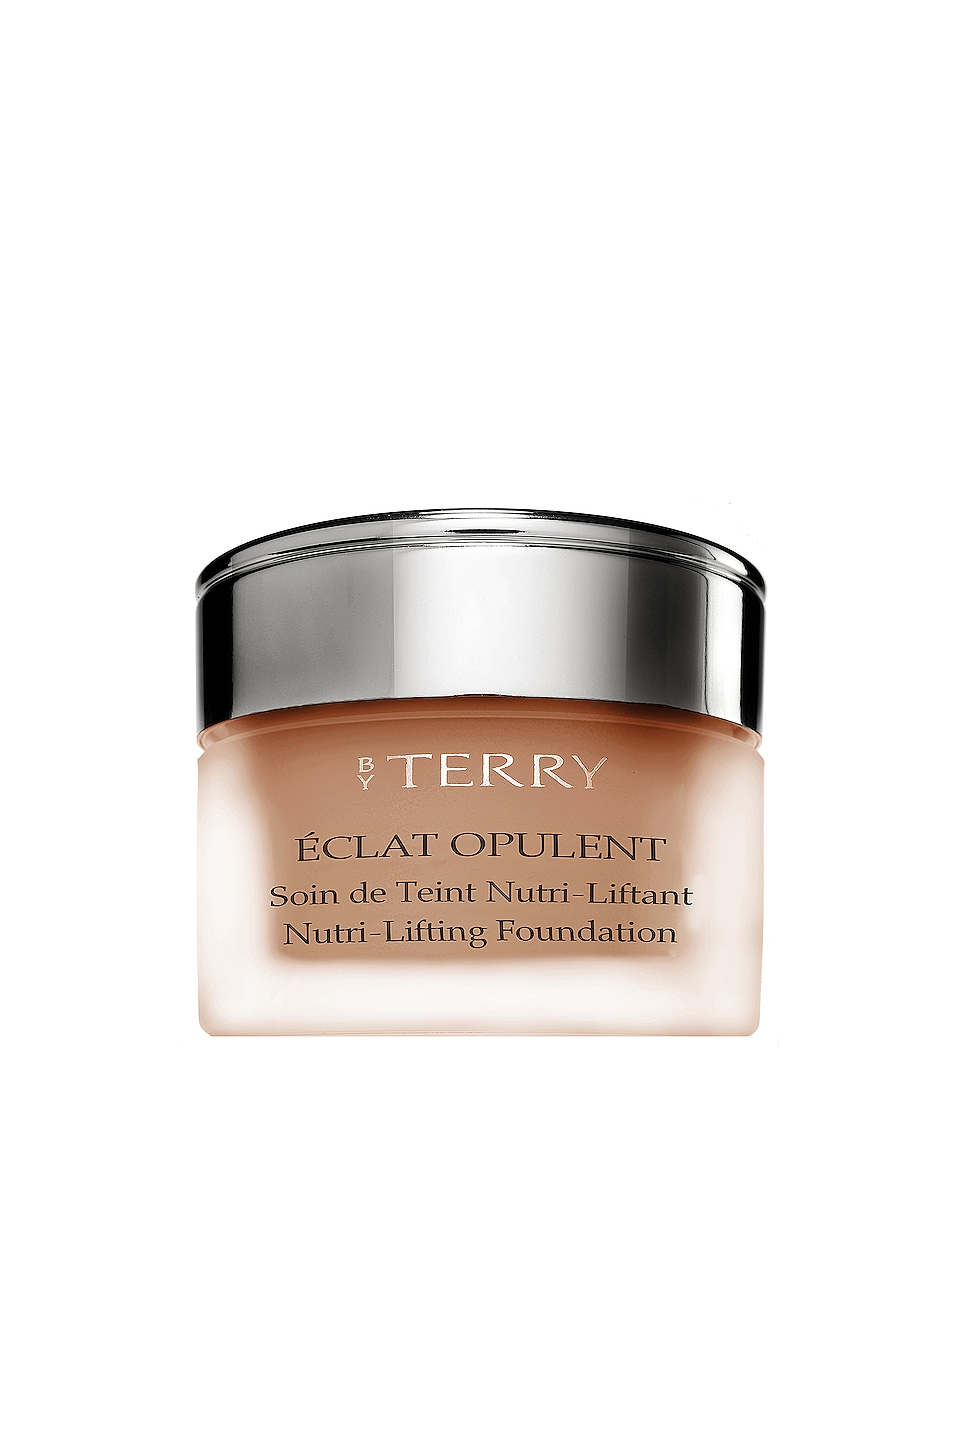 By Terry Eclat Opulent Nutri-Lifting Foundation in Warm Radiance